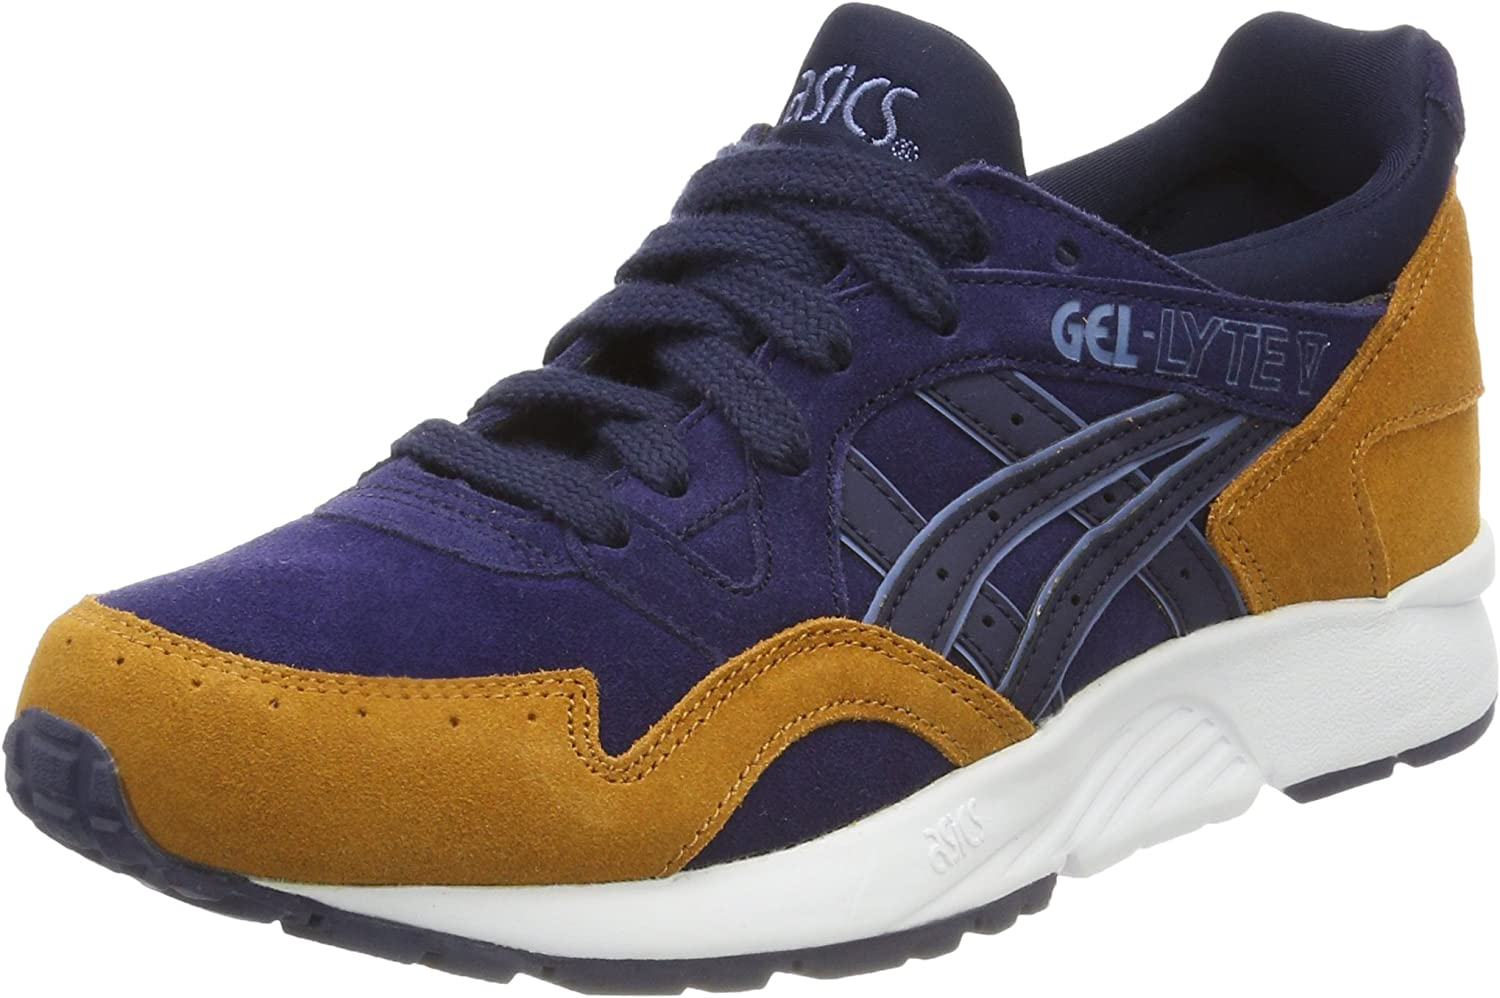 ASICS Unisex Adults' Gel-Lyte V Low-Top Sneakers